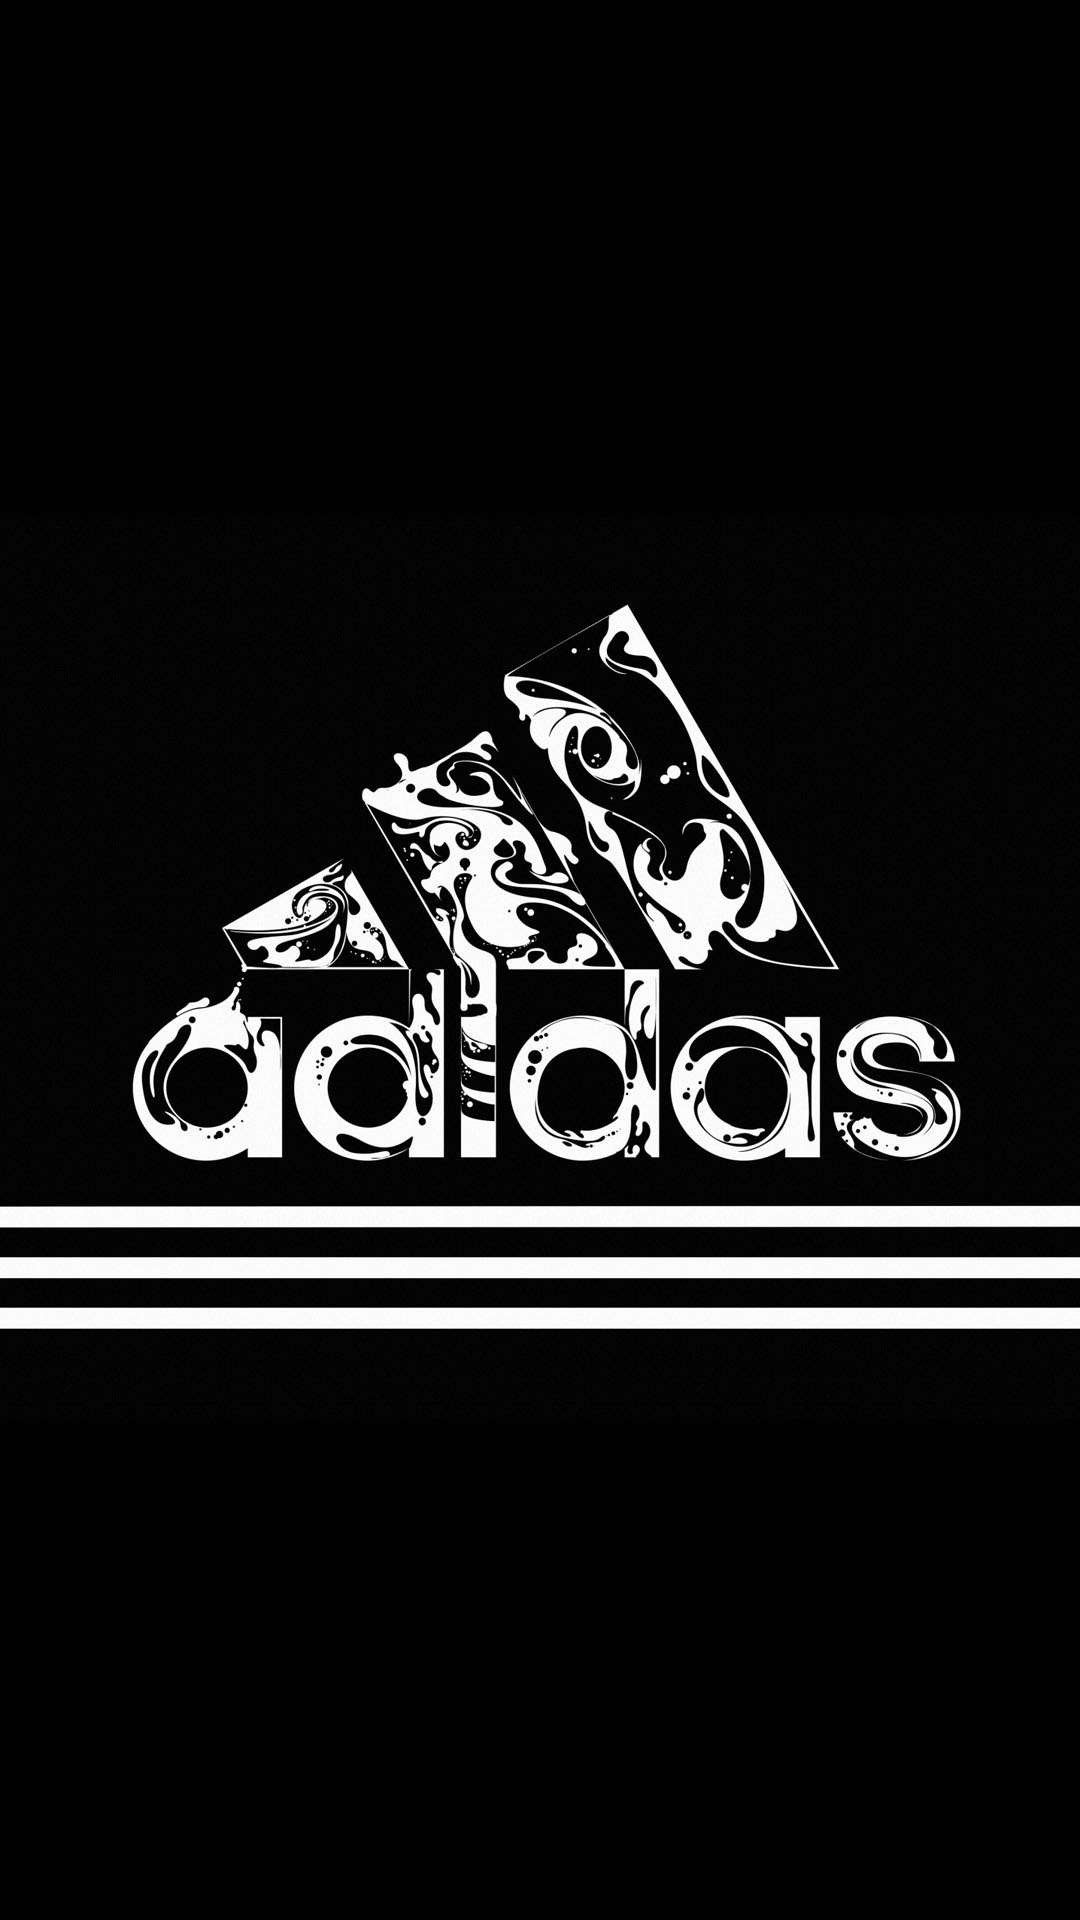 Adidas Design Papo Squad Wallpaper S Backgrounds Soccer Quotes Wallpapers Manga